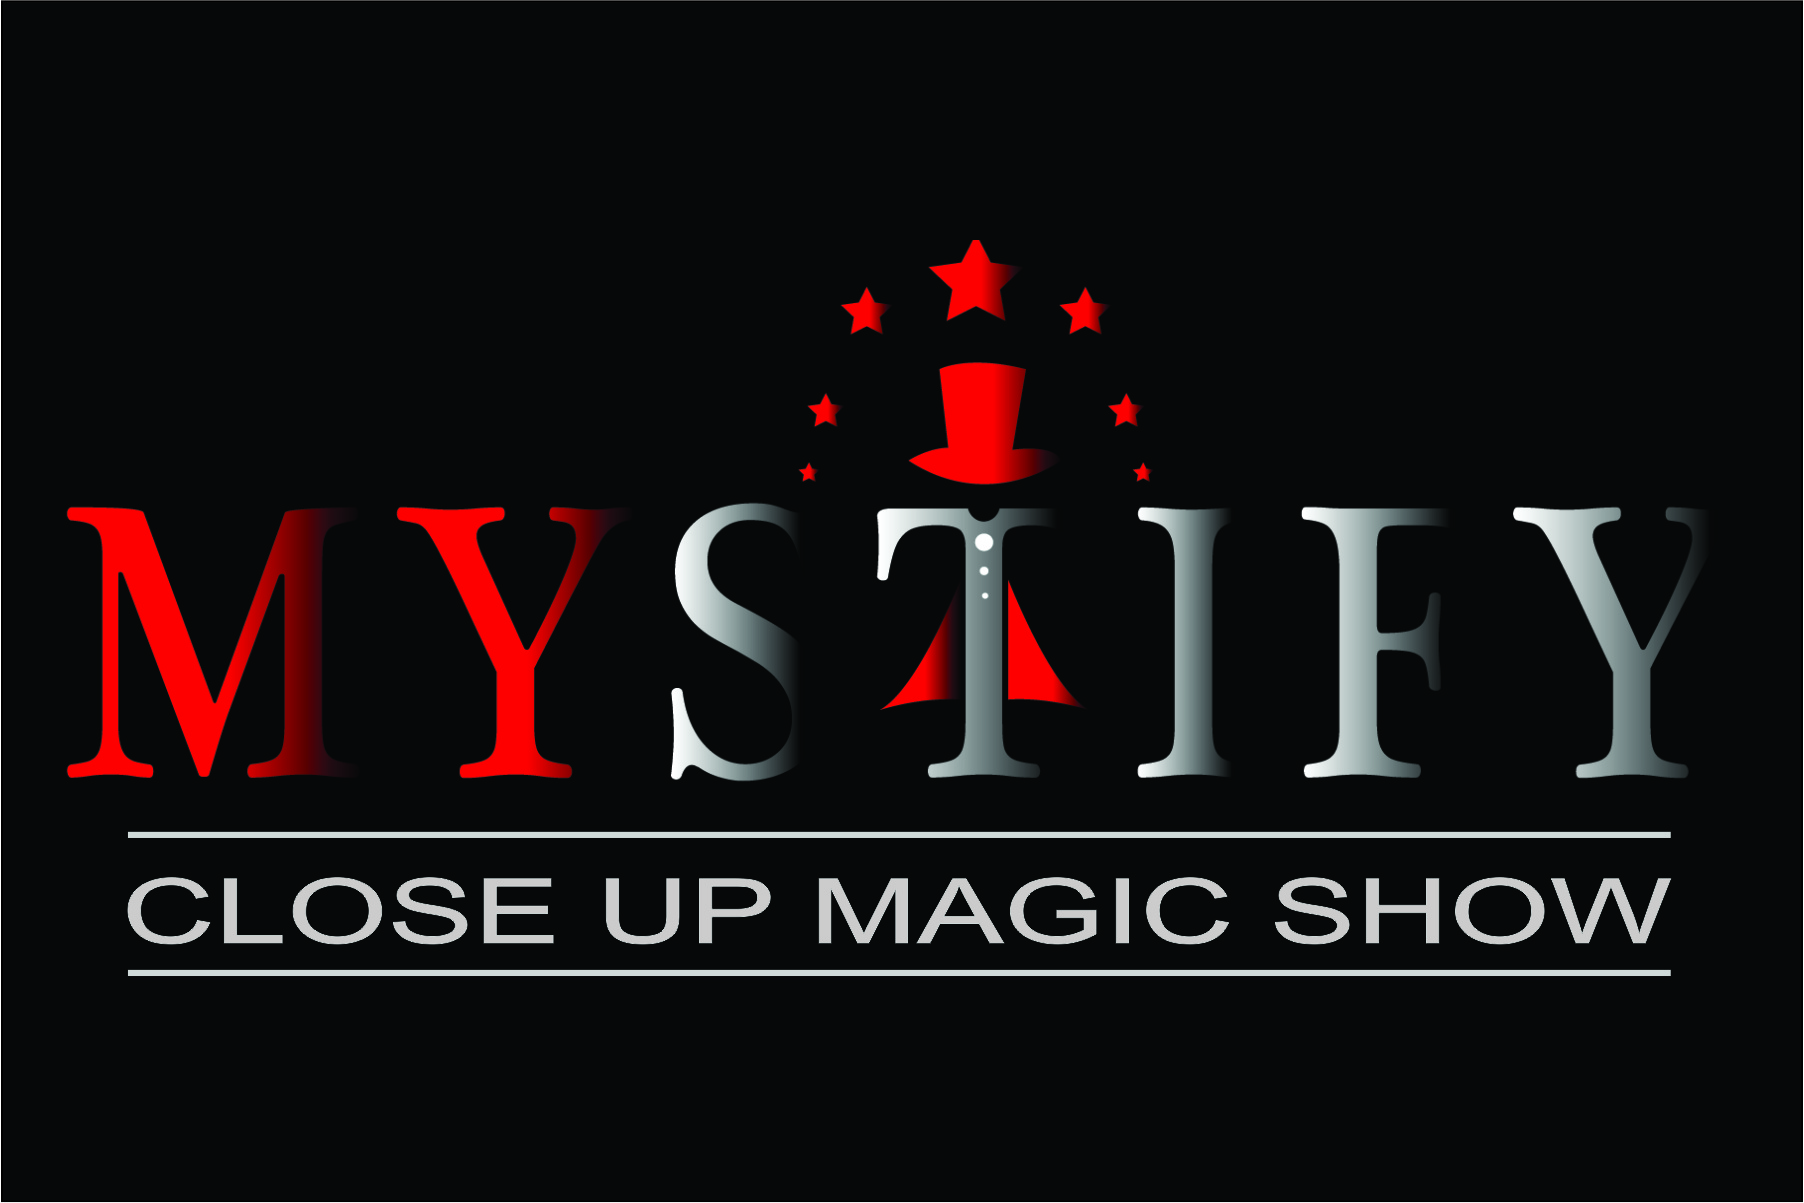 Mystify Close Up Magic Show